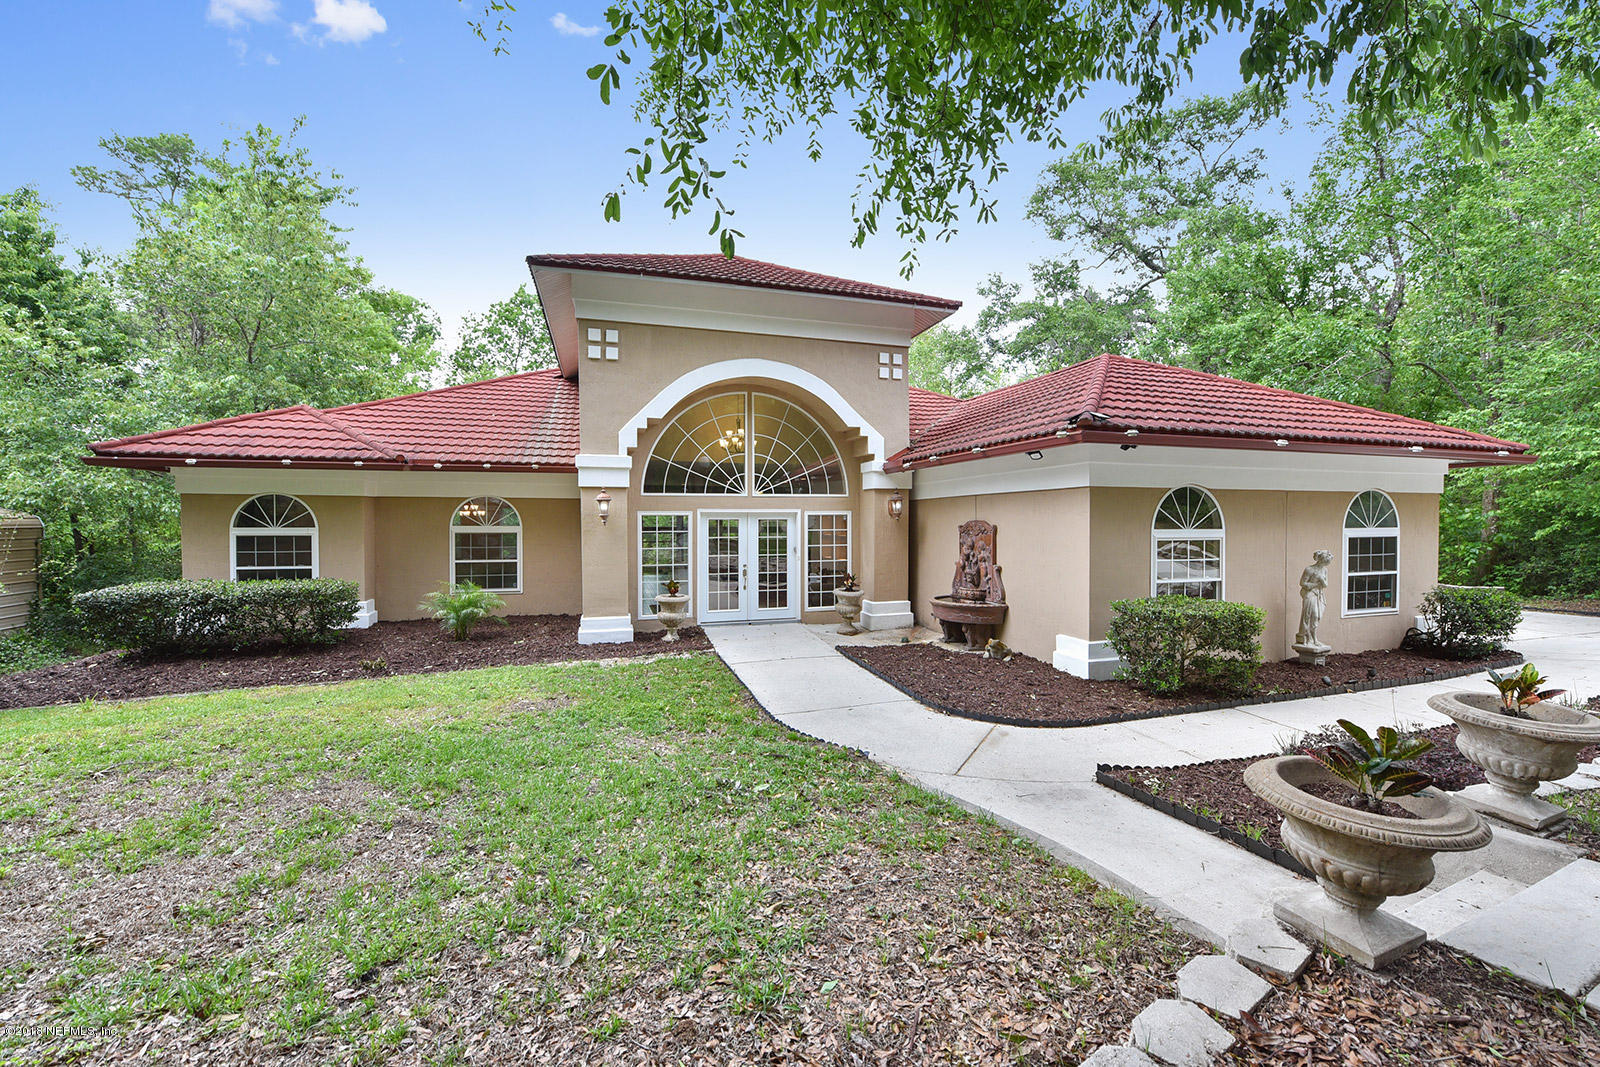 4103 HALL BOREE, MIDDLEBURG, FLORIDA 32068, 4 Bedrooms Bedrooms, ,3 BathroomsBathrooms,Residential - single family,For sale,HALL BOREE,932734